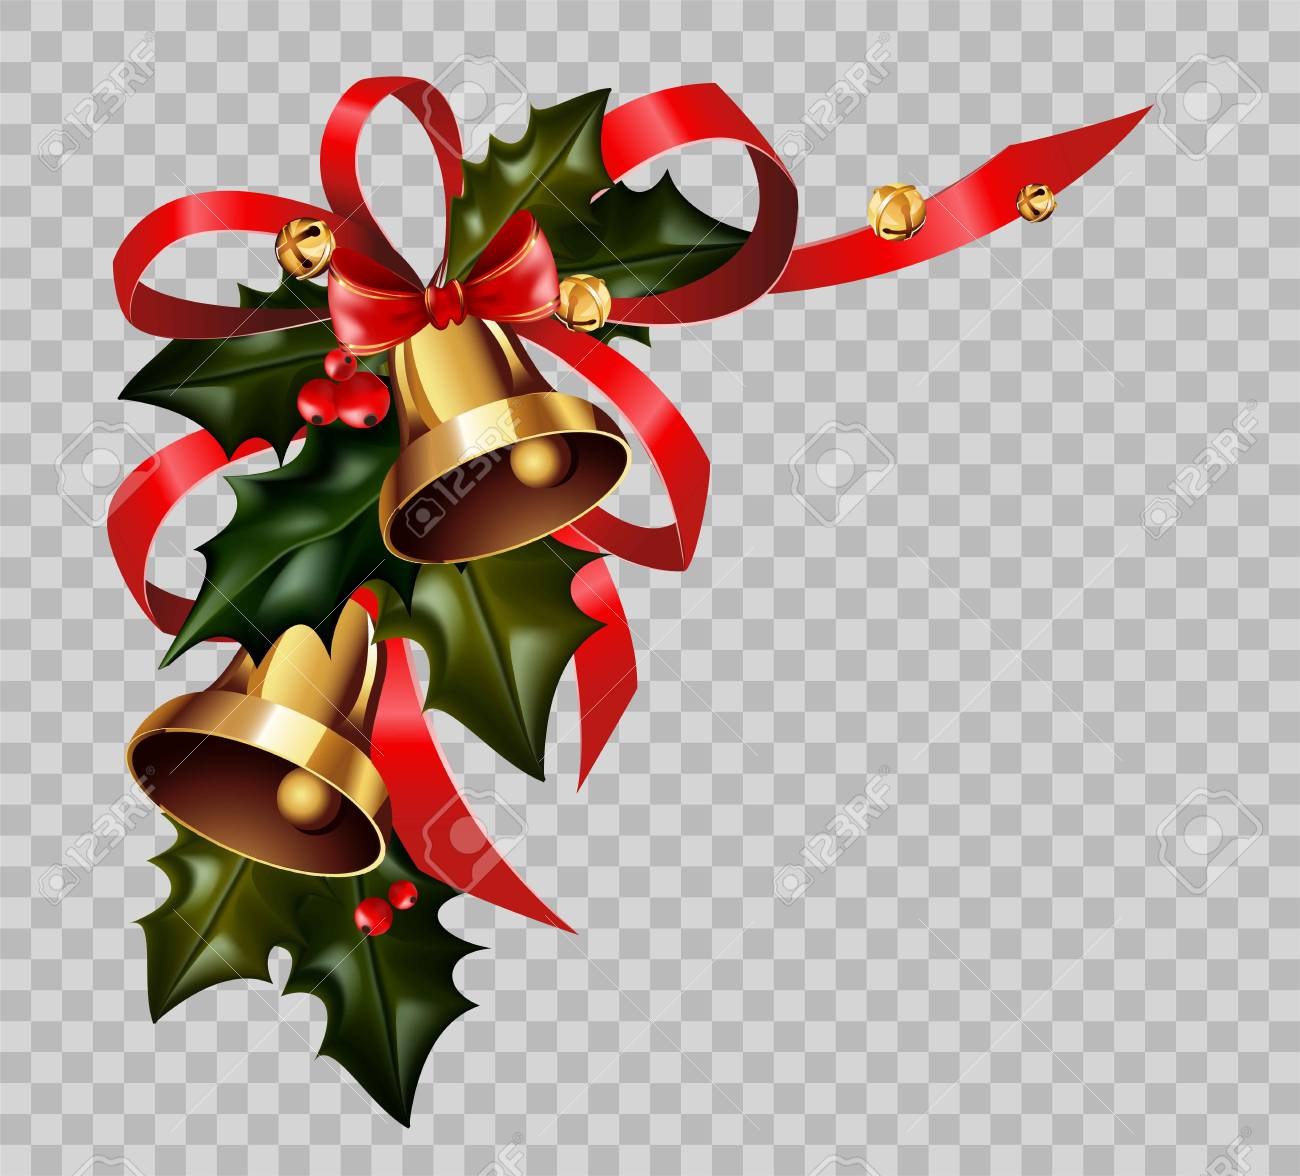 Christmas Graphics Transparent.Christmas Decoration Holly Wreath Bow Gold Bells Element Vector